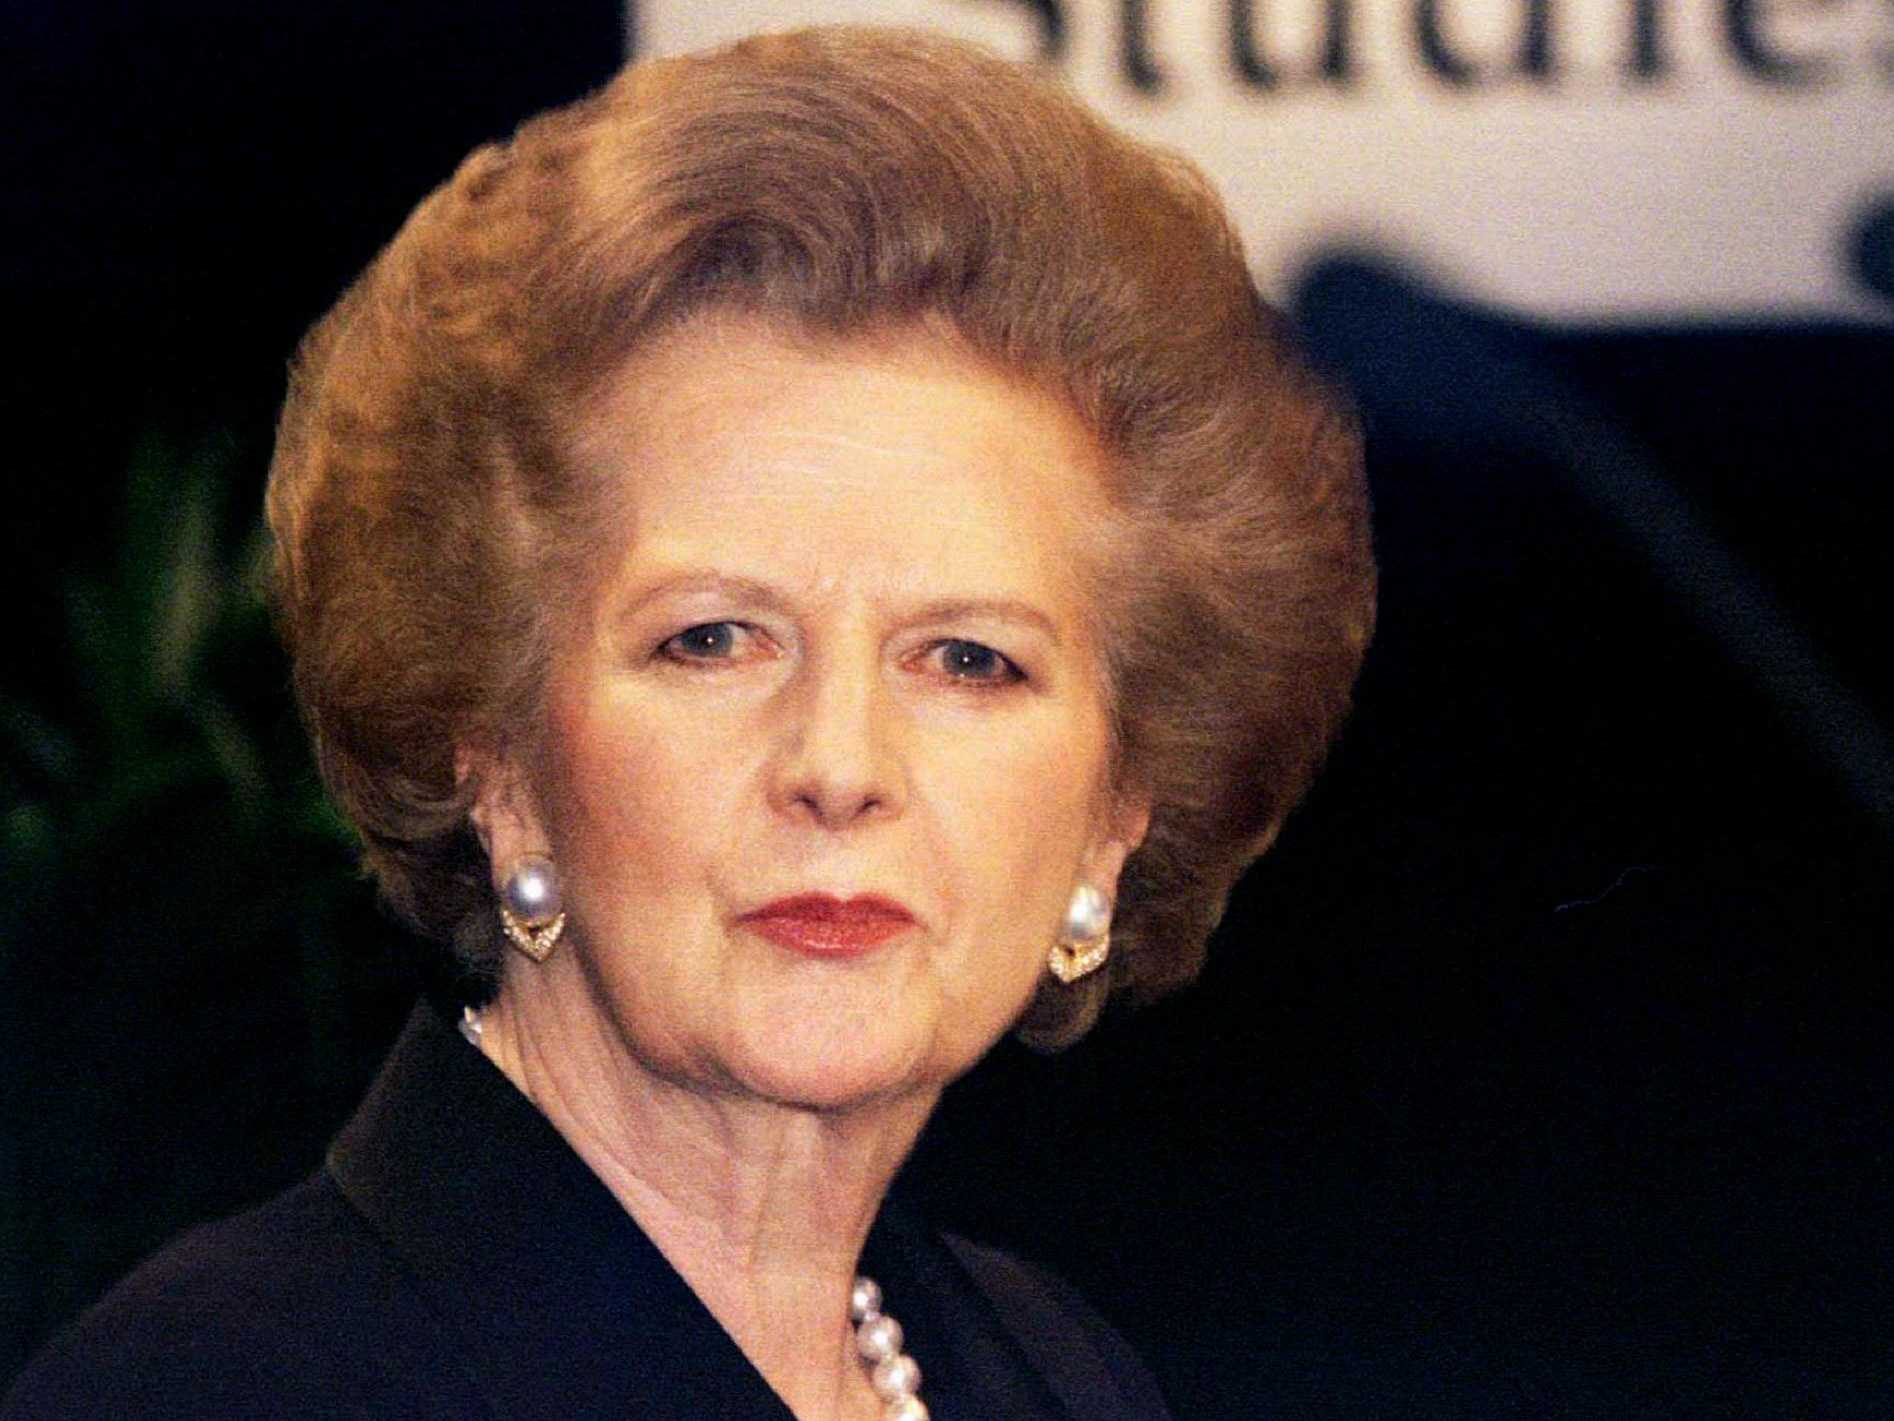 margaret-thatcher-wanted-to-keep-paedophile-diplomats-name-secret